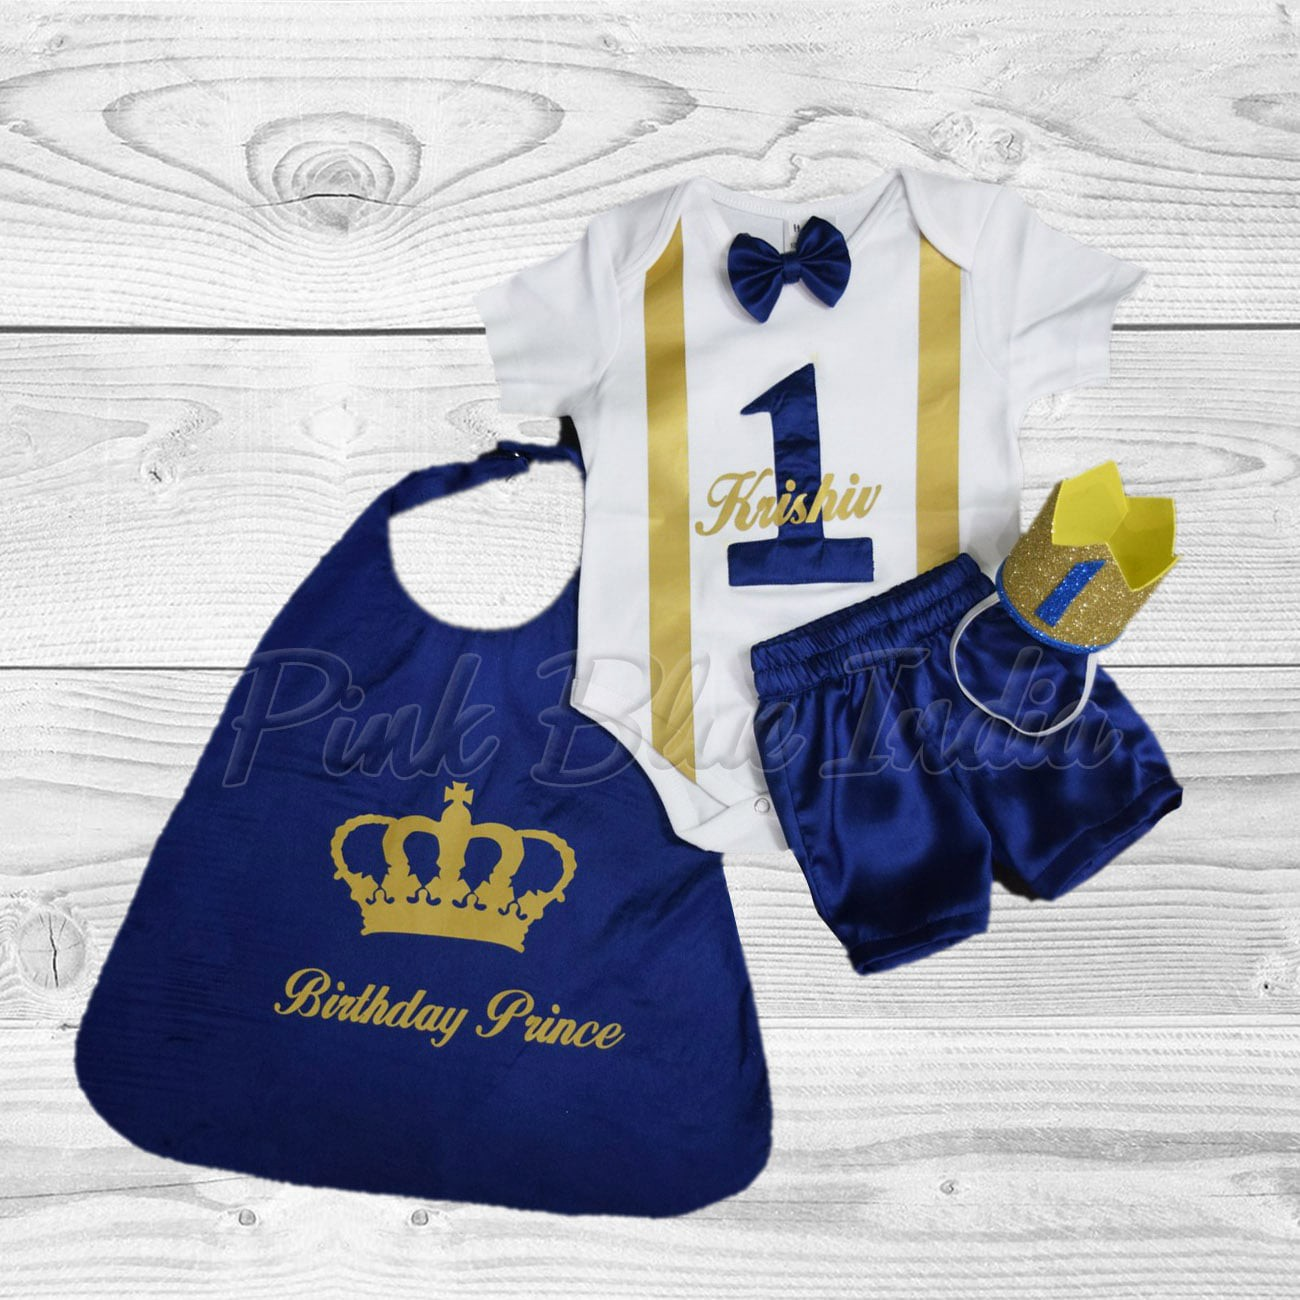 Stupendous First Birthday Cake Smash Outfits For Baby Boys Pink Blue India Funny Birthday Cards Online Inifofree Goldxyz